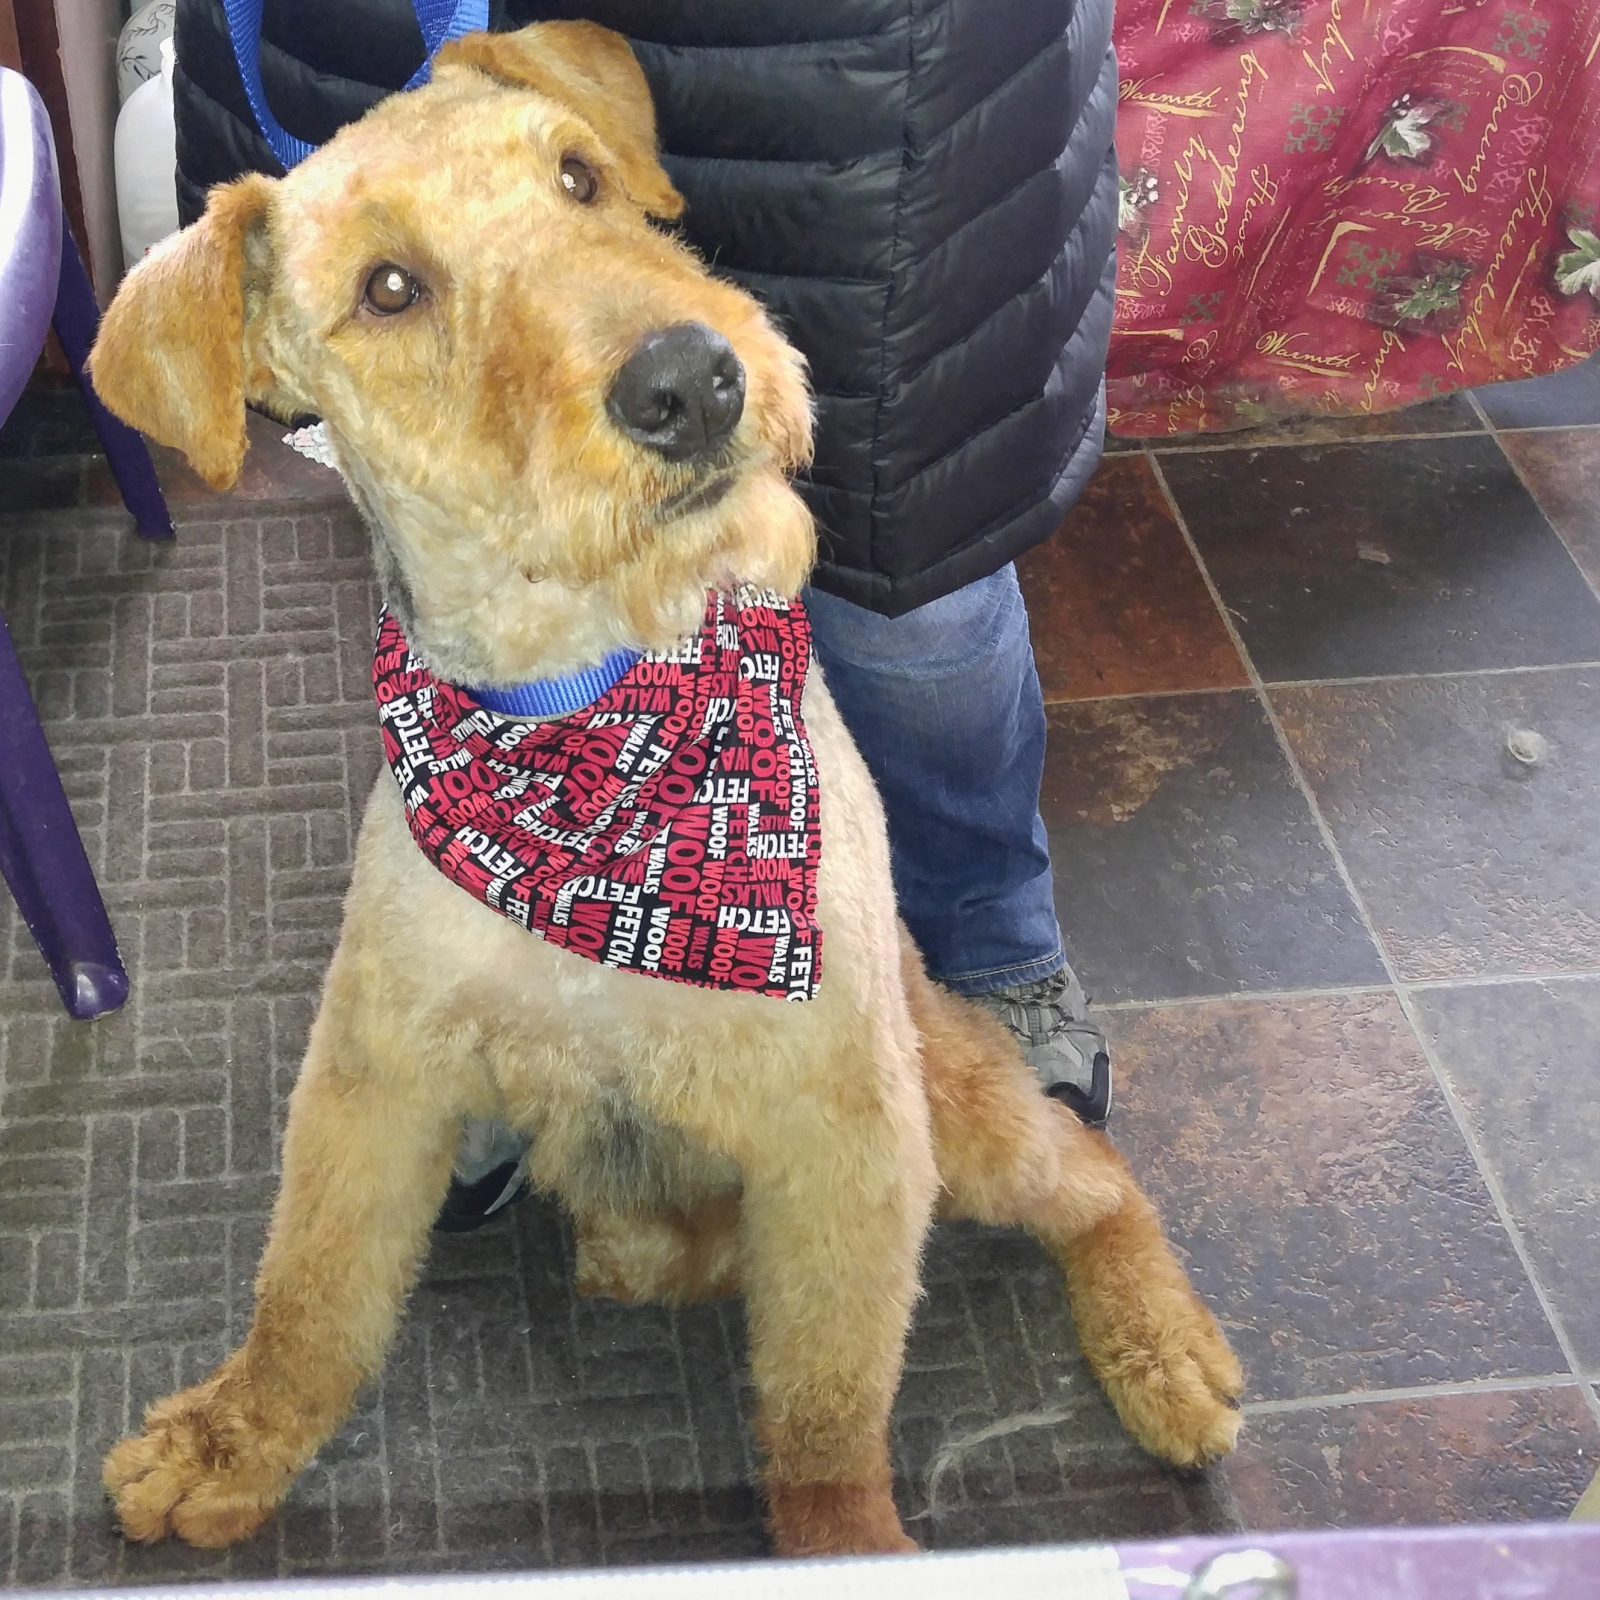 ATRA - Airedale Terrier Rescue & Adoption | Finding loving homes one